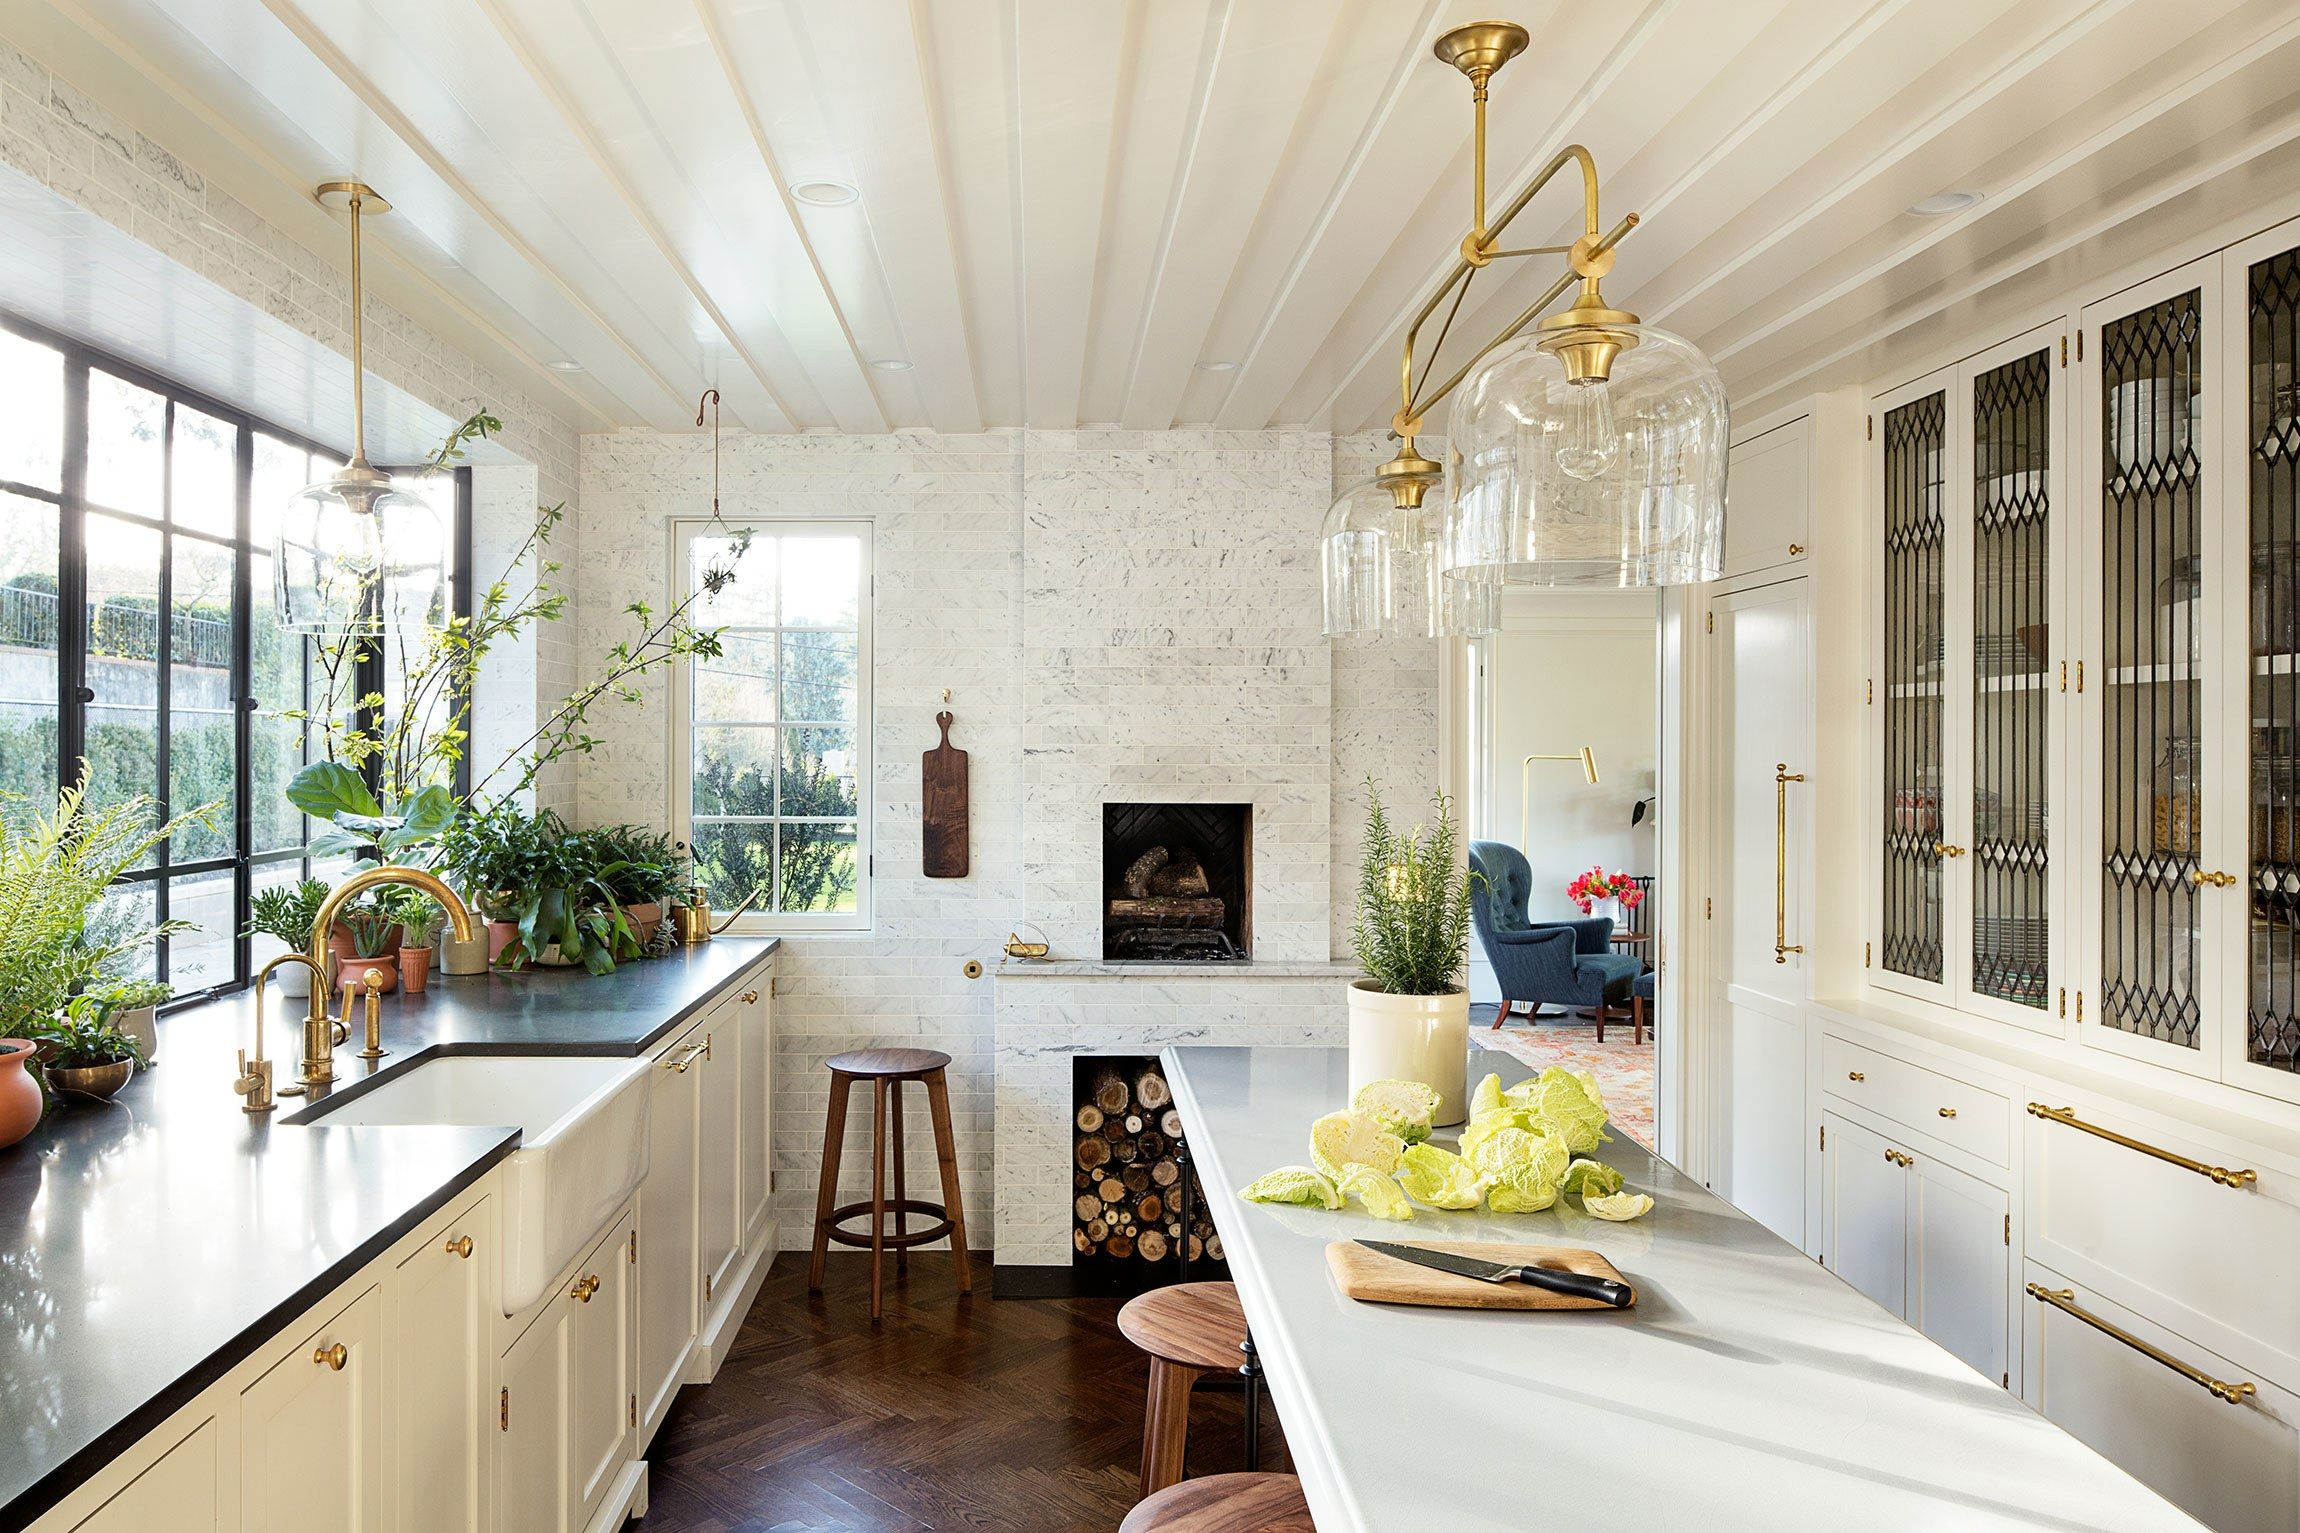 Interior designer jessica helgerson completely remodels a family